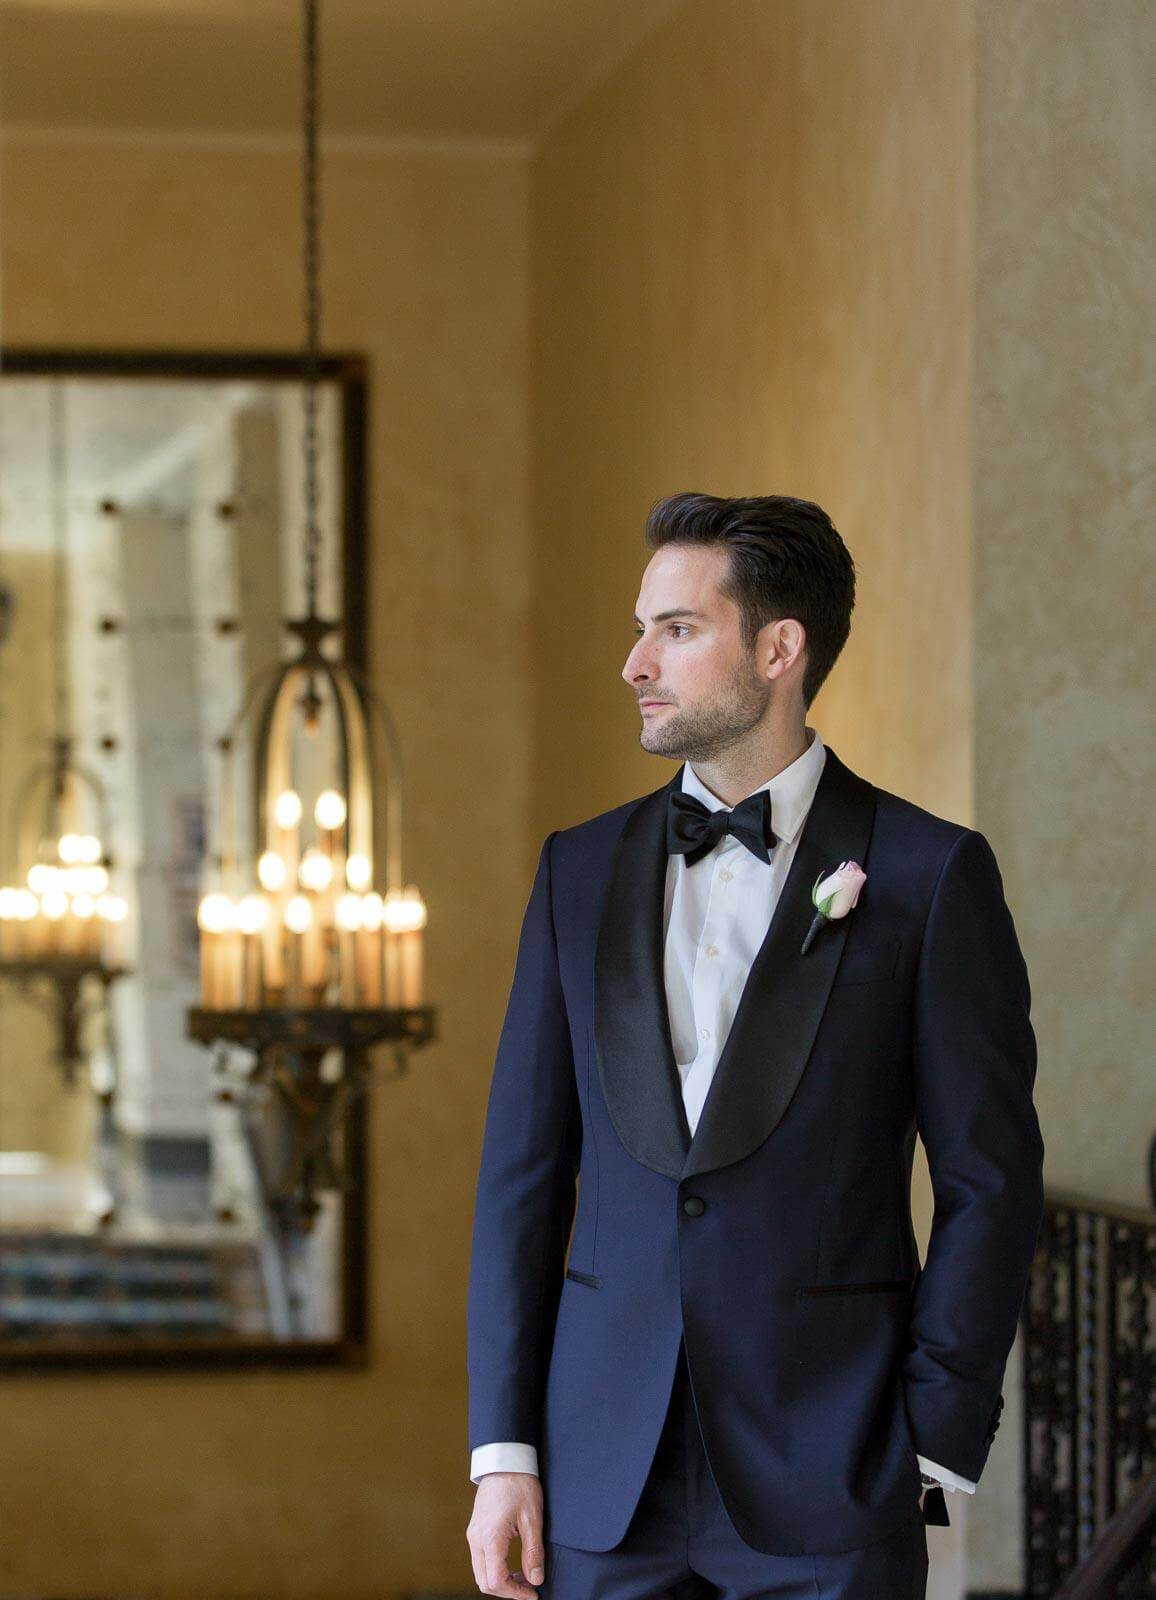 Biltmore Hotel Dream Wedding